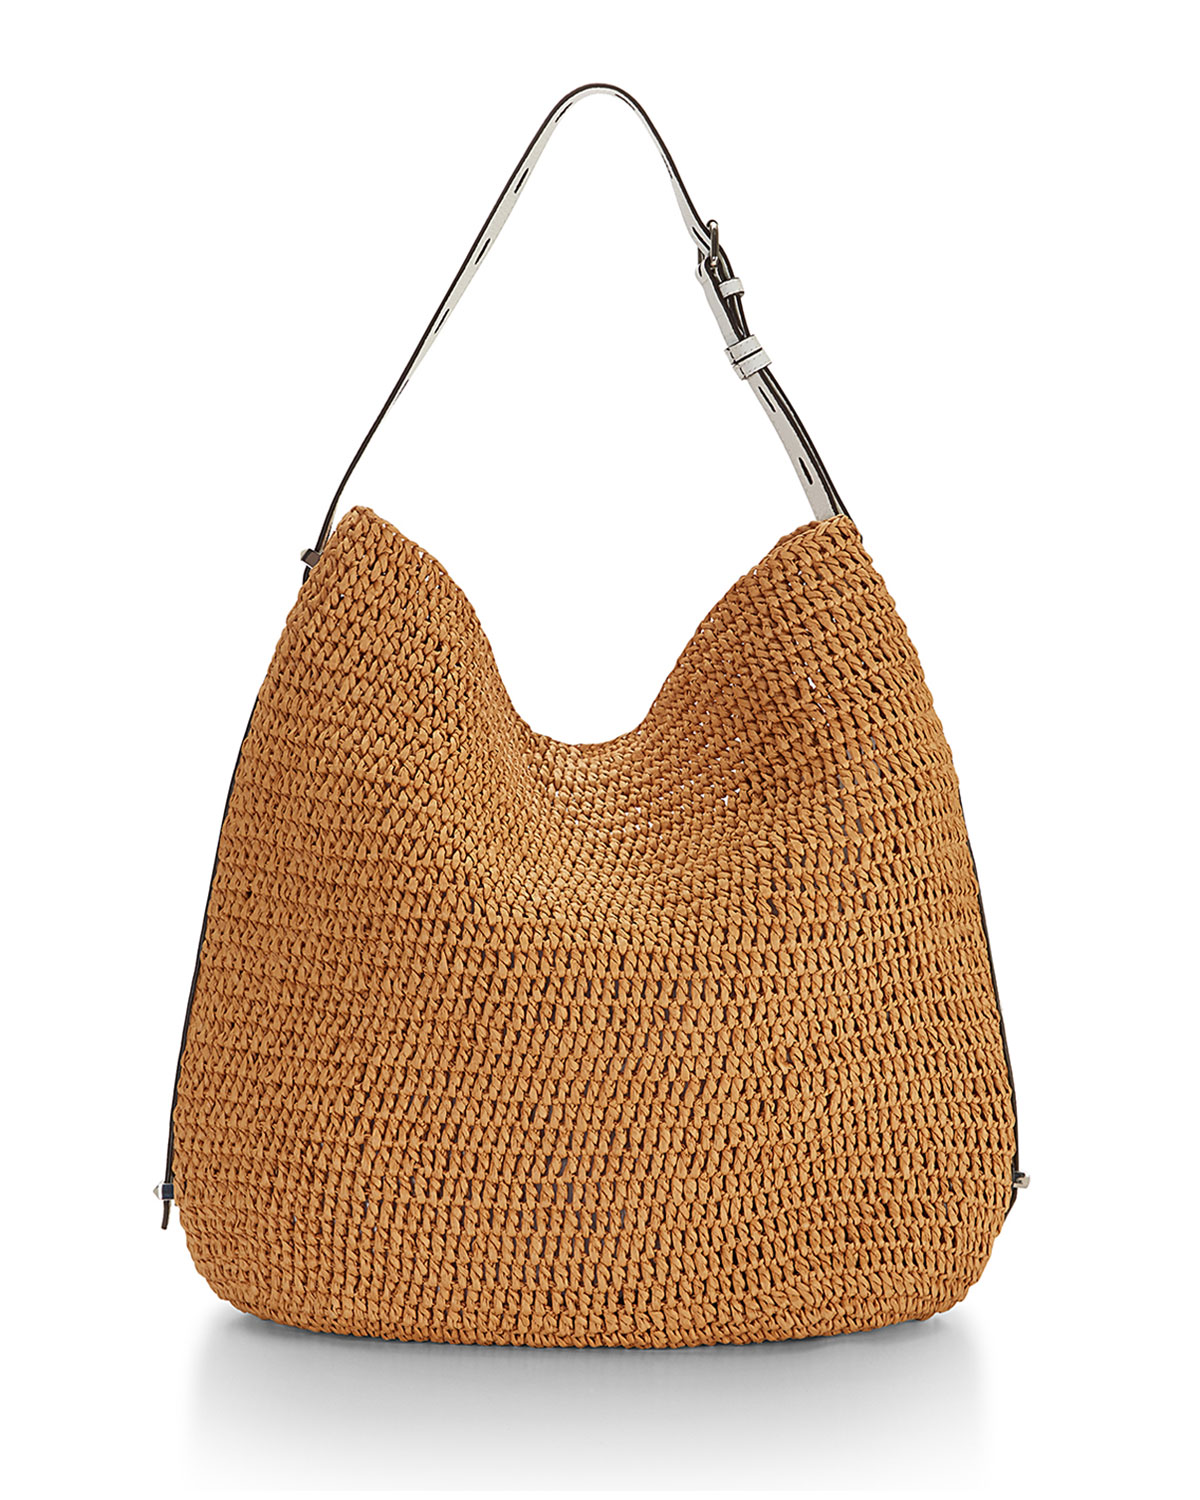 Sardinia Straw Leather-Trim Hobo Bag, Natural/White - Rebecca Minkoff